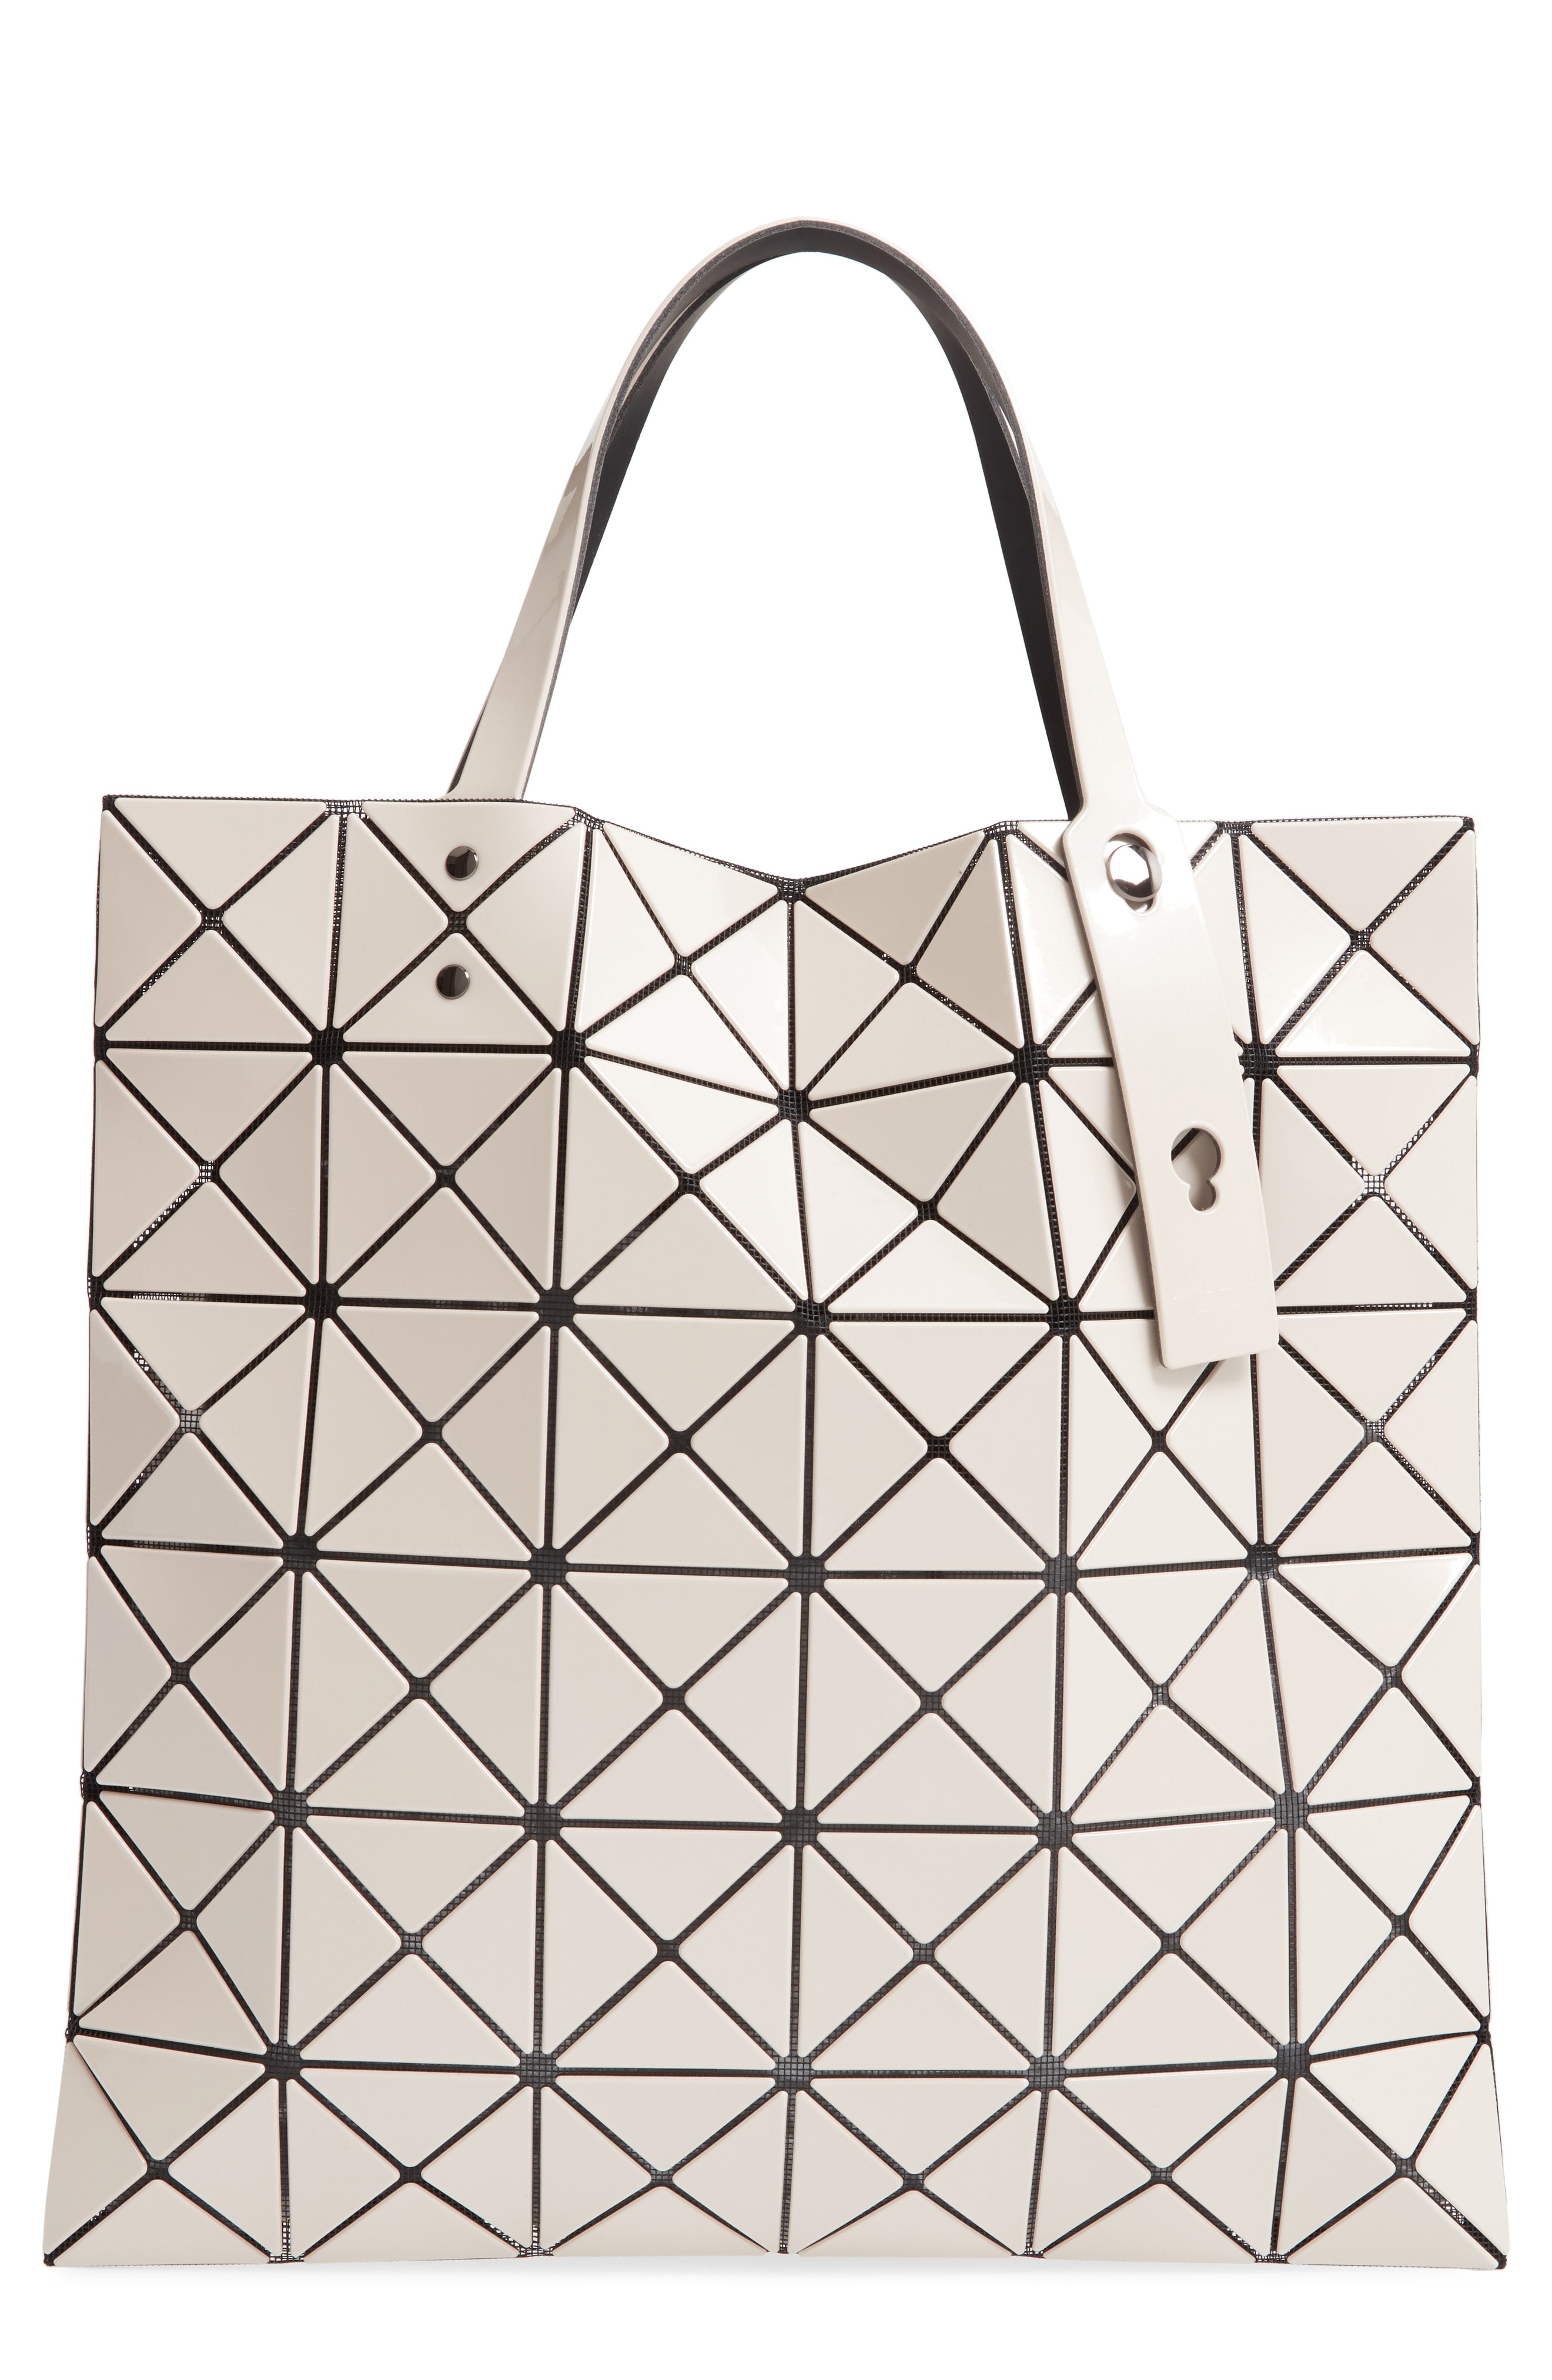 2e384d2691 Bao Bao Issey Miyake Lucent Tote In Beige